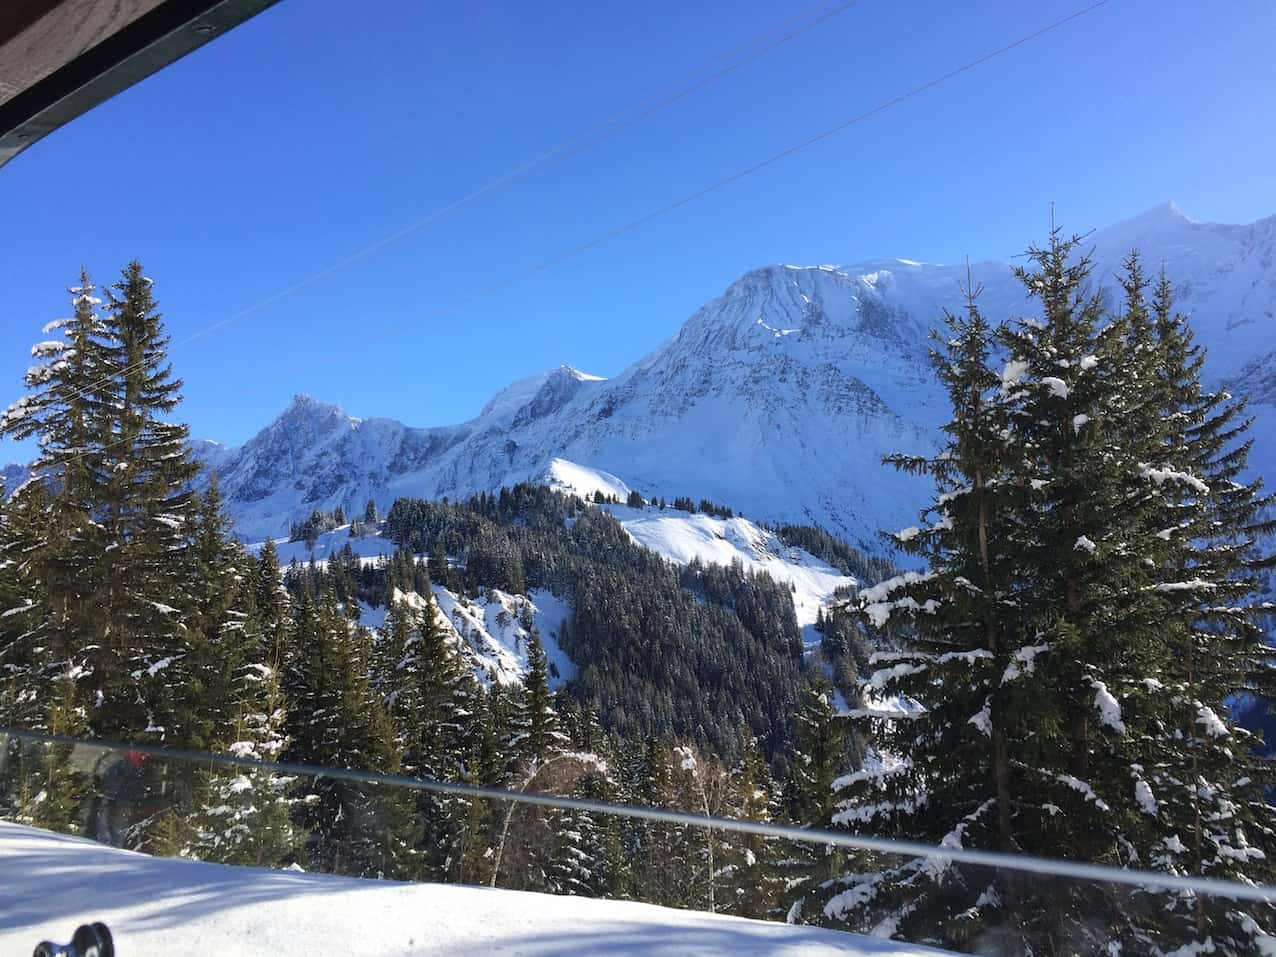 Mont Blanc Tramway to Les Houches, Chamonix for non skiers